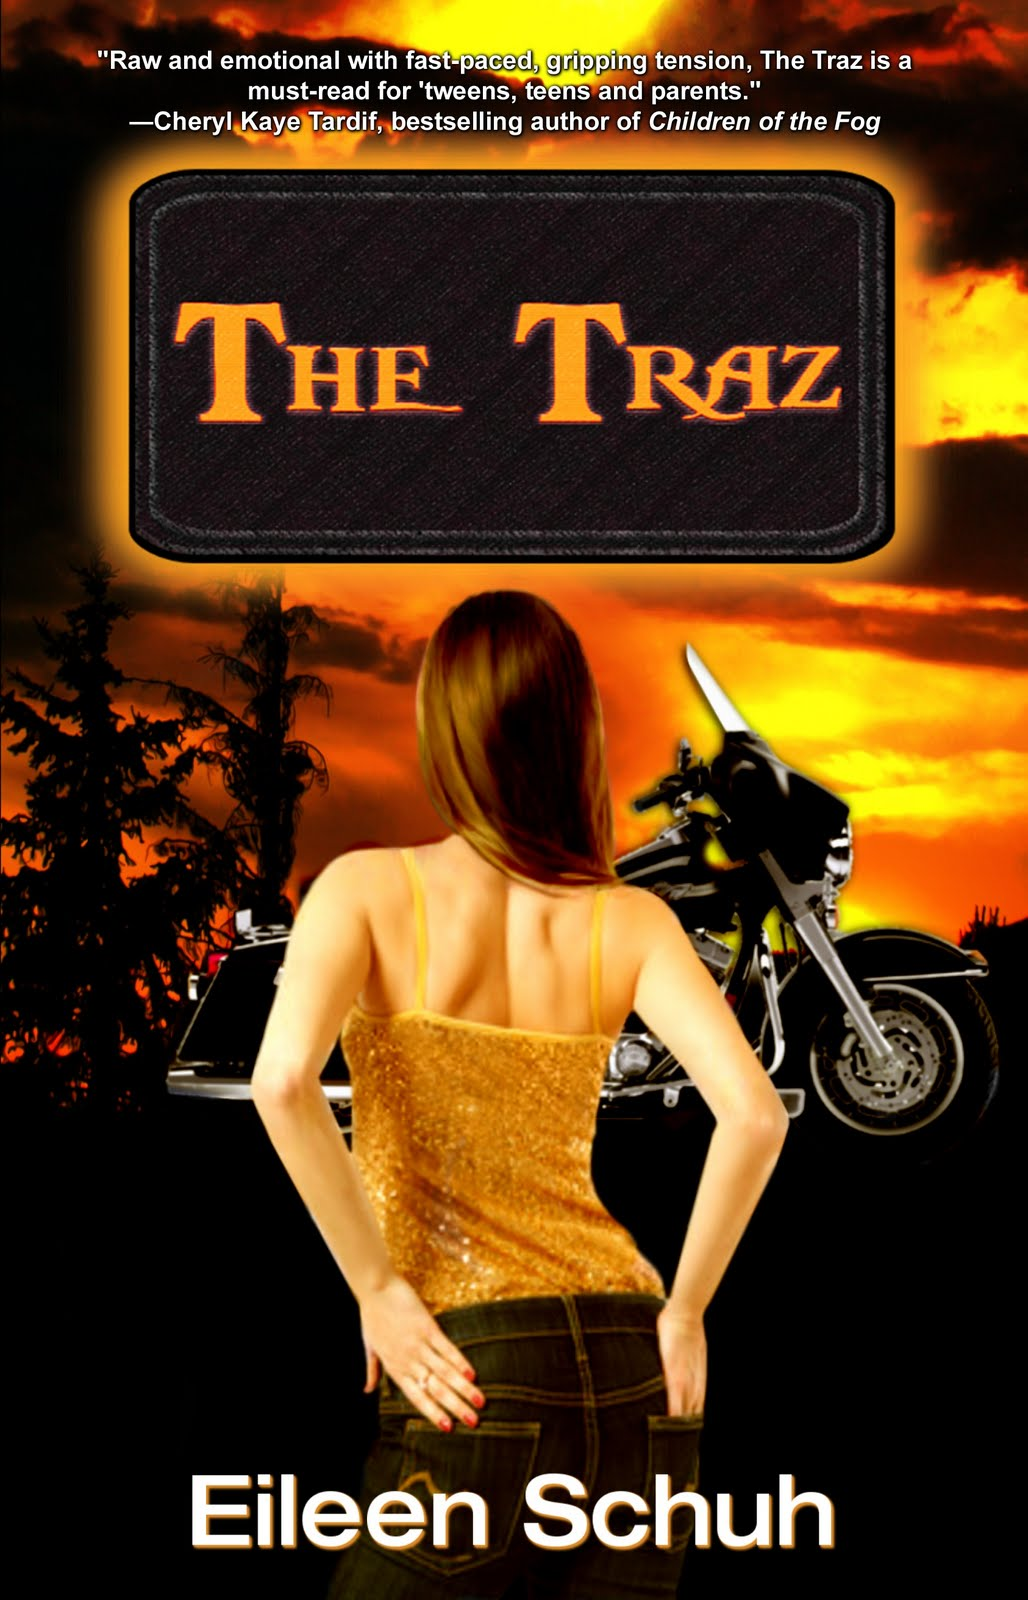 http://www.amazon.com/The-Traz-Book-BackTracker-Series/dp/0986938823/ref=tmm_pap_title_0